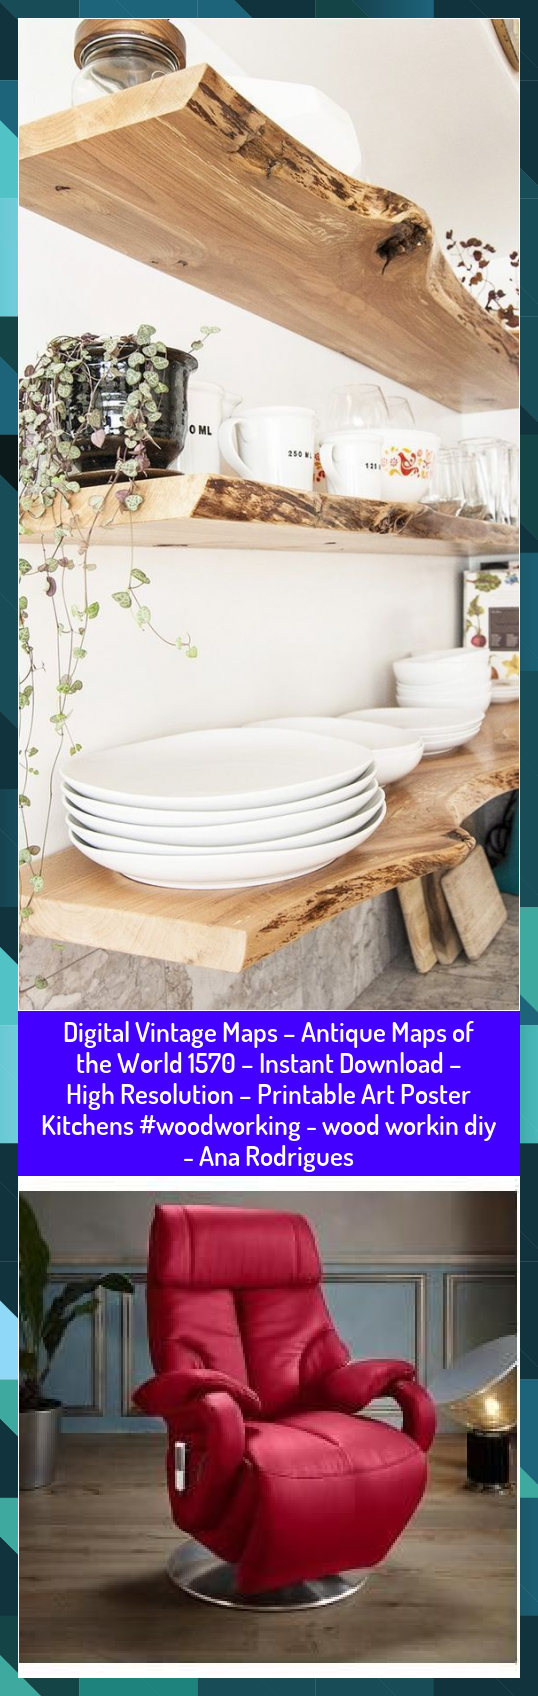 Digital Vintage Maps – Antique Maps of the World 1570 – Instant Download – High Resolution – Printable Art Poster Kitchens #woodworking - wood workin diy - Ana Rodrigues #ana #Antique #Art #Digital #DIY #Download #High #Instant #Kitchens #maps #Poster #Printable #Resolution #Rodrigues #Vintage #wood #woodworking #workin #World